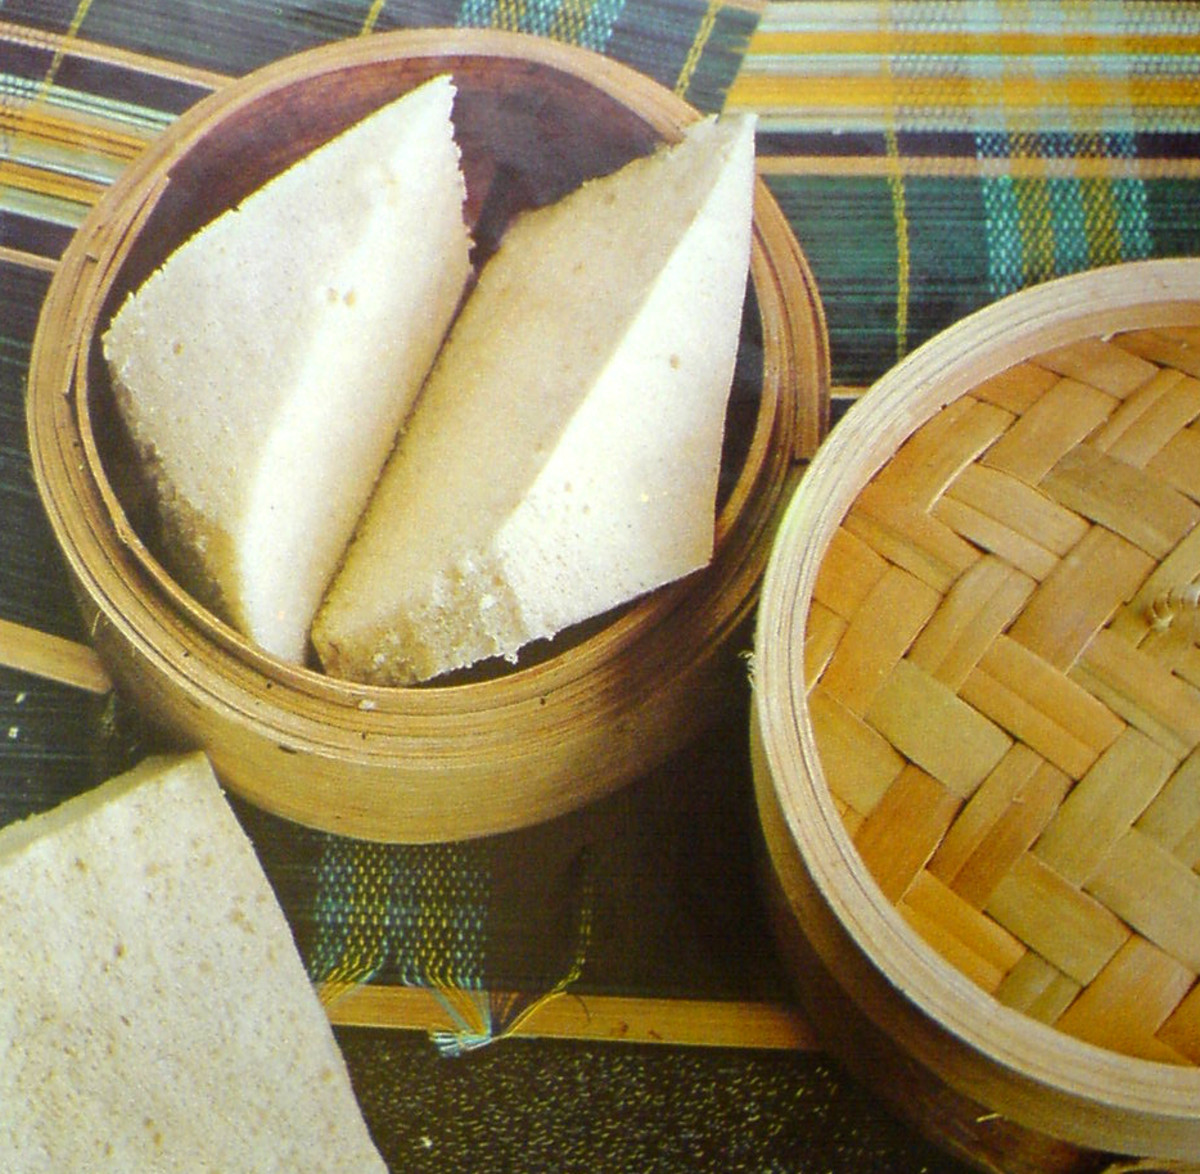 Steamed cake  or kuih is very popular in Malaysia, Singapore and Indonesia. Usually eaten as snacks.